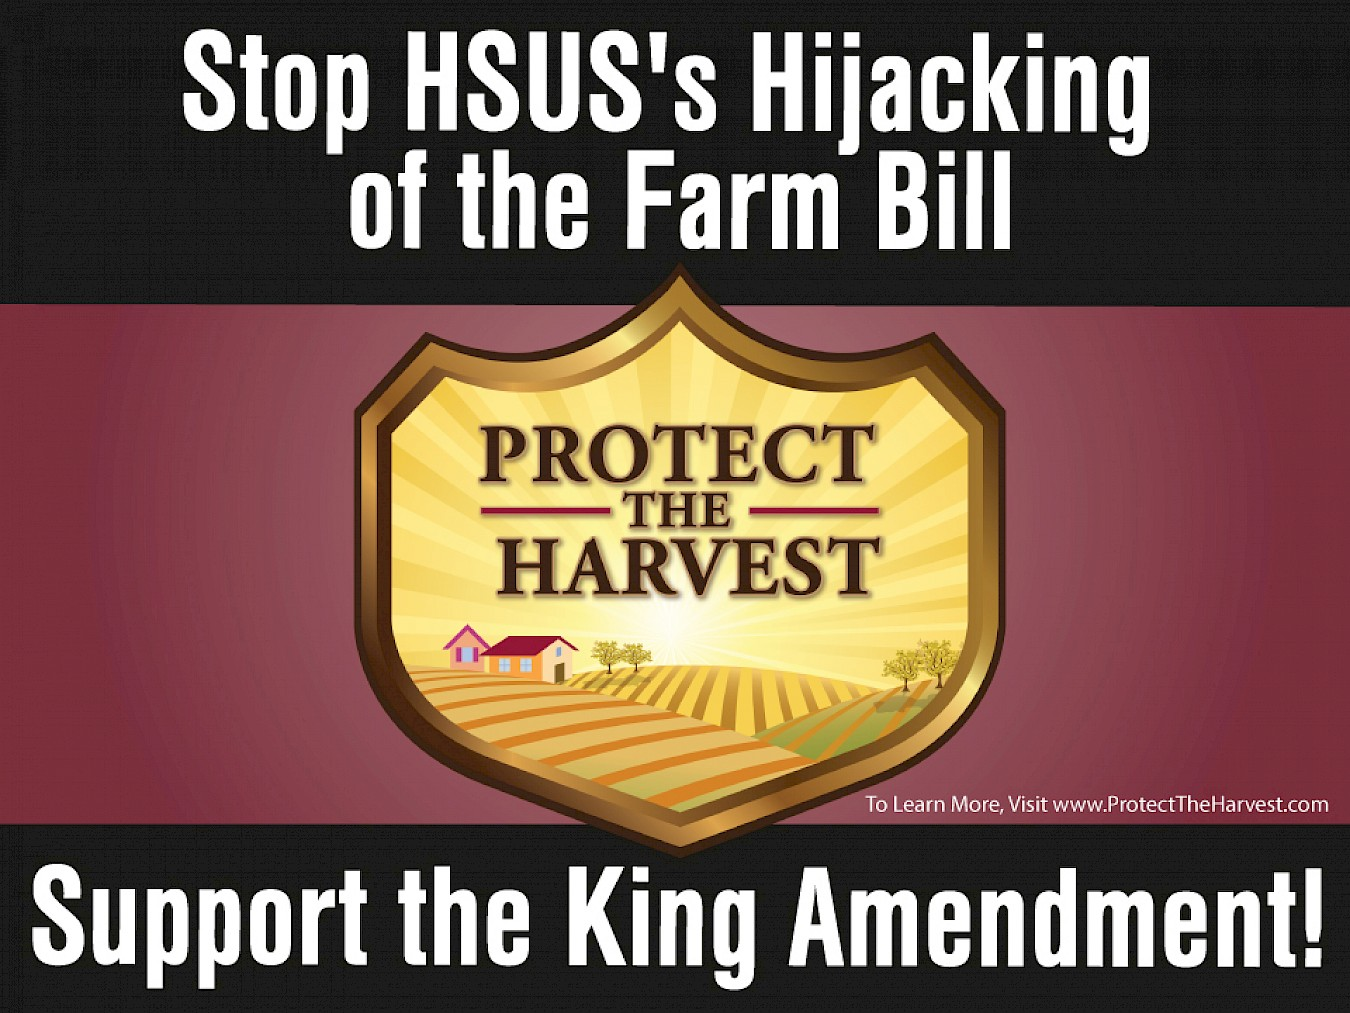 Call to Action: Support the King Amendment